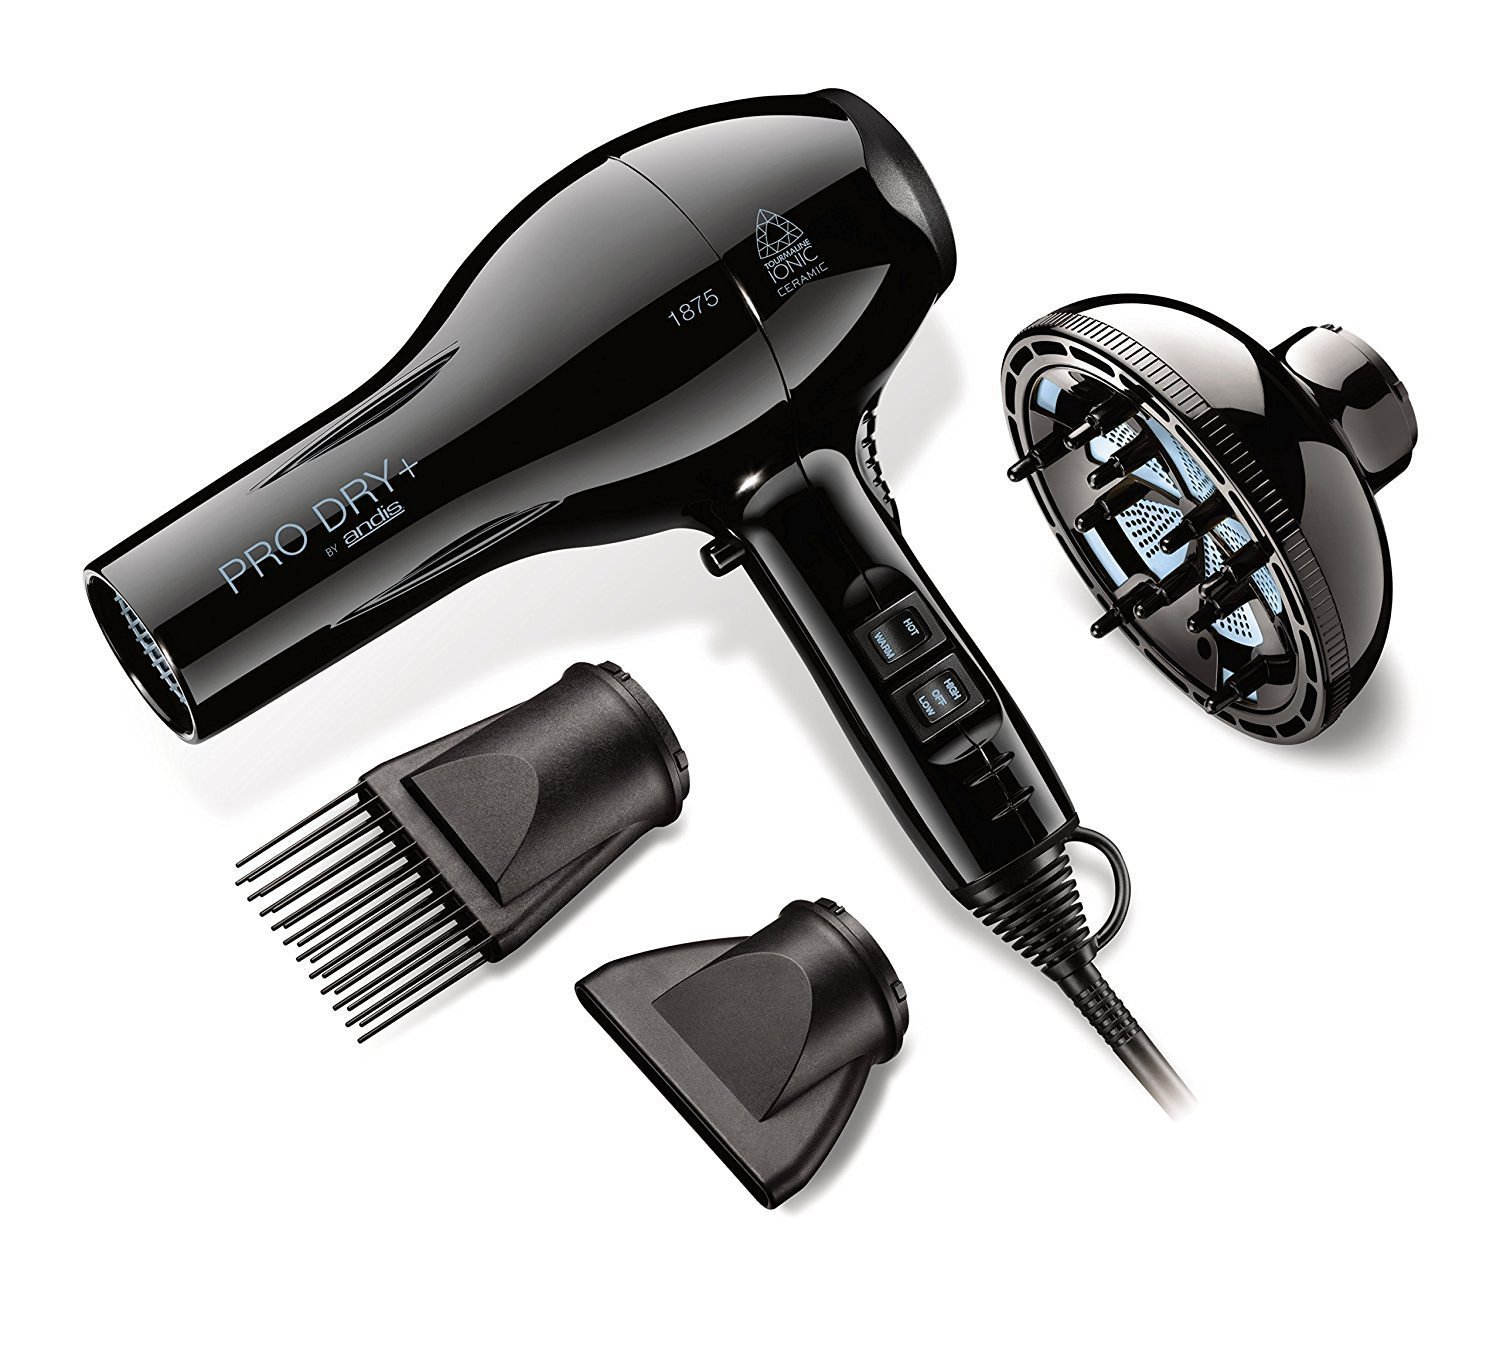 Cheap Remington Curling Hair Dryer Find Remington Curling